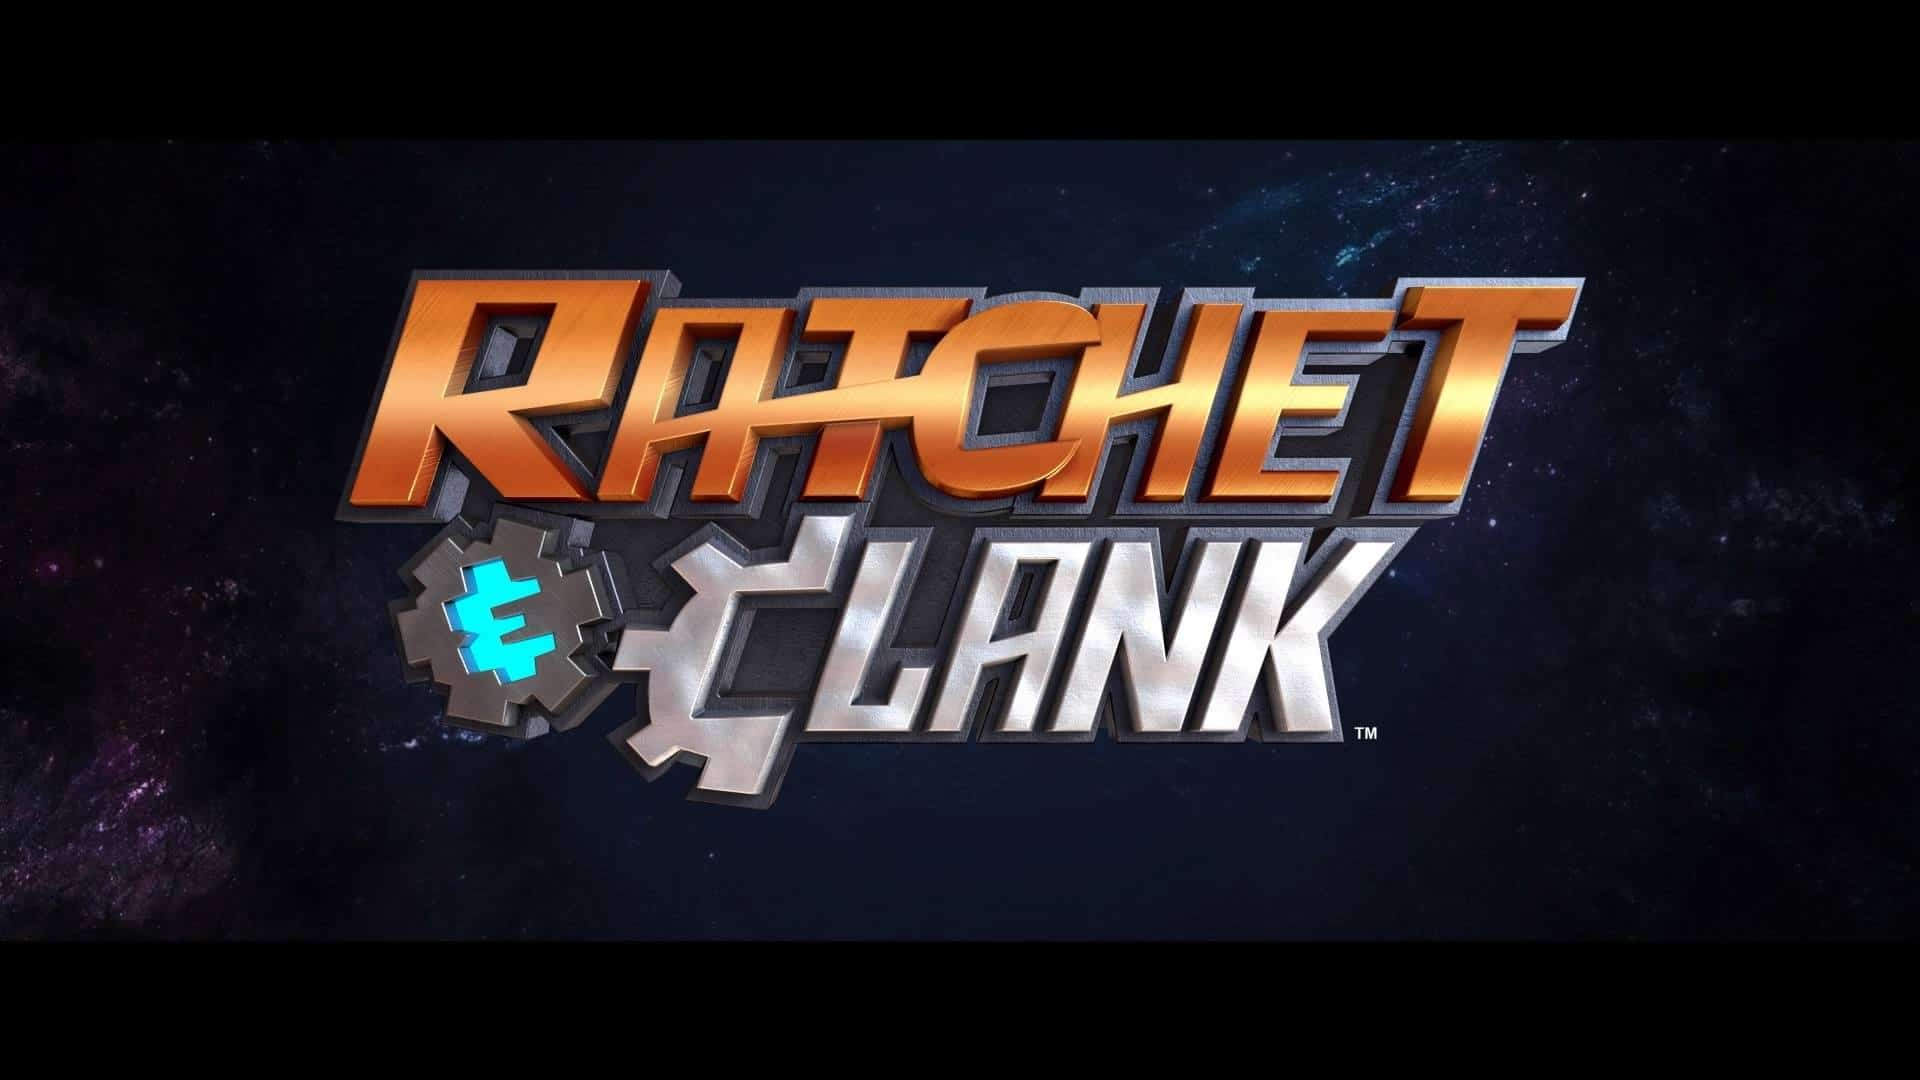 'Ratchet & Clank' Review – Does it live up to the legacy?